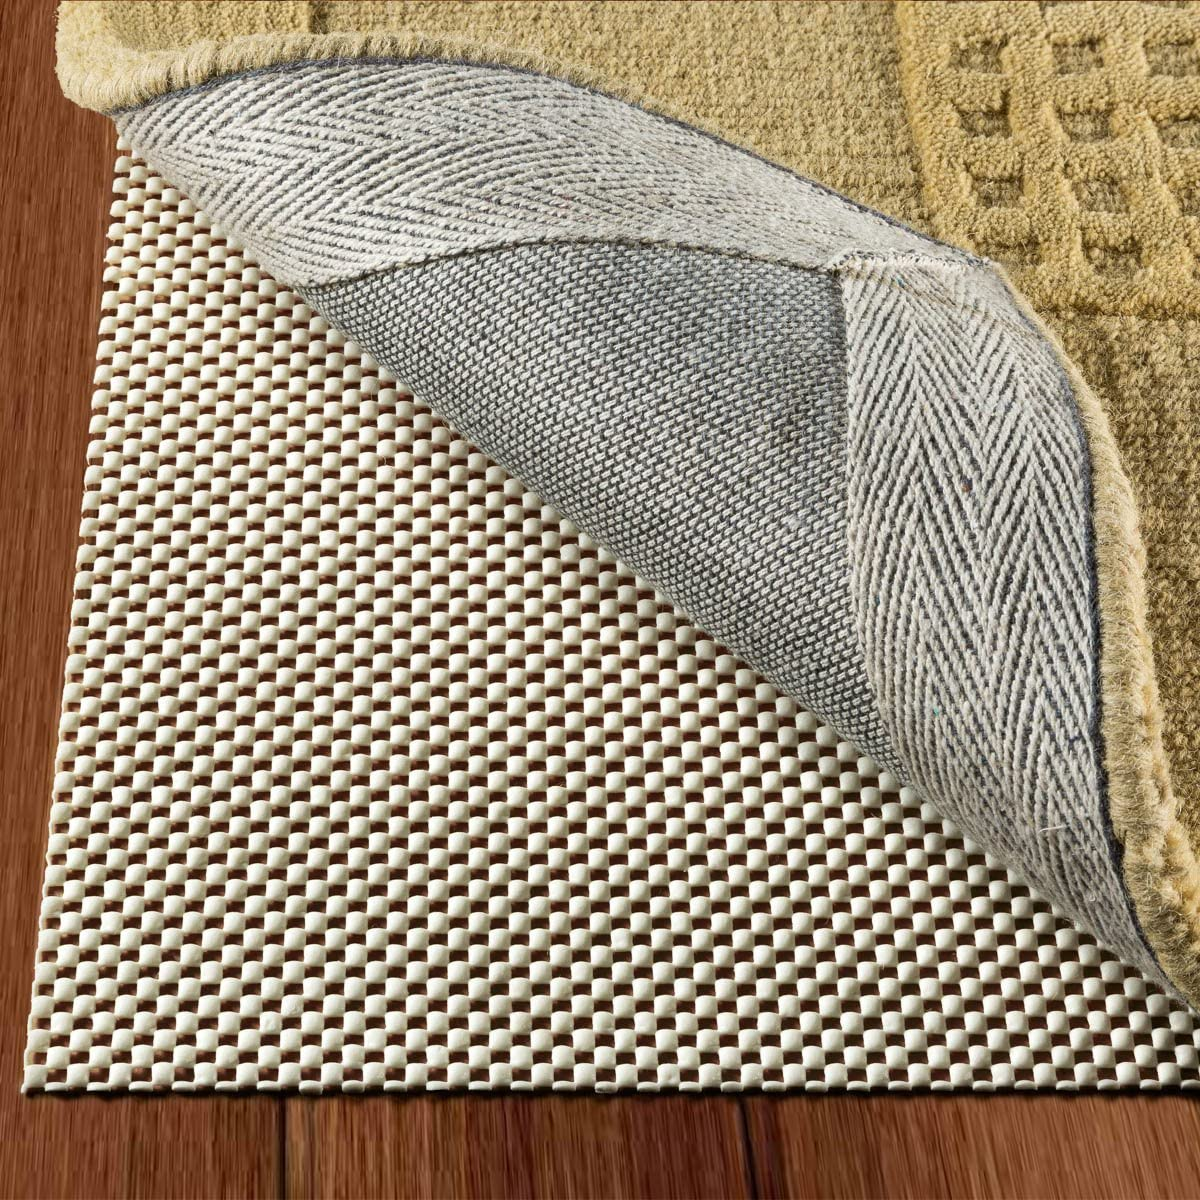 Tile or Cement Traditional or Contemporary Rugs /& Runners for any Hard Surface Floors Non Slip Area Rug Pad 2 x 7 Thick Runner Rug Gripper for Firm Hold on Oriental Fully Washable Wood